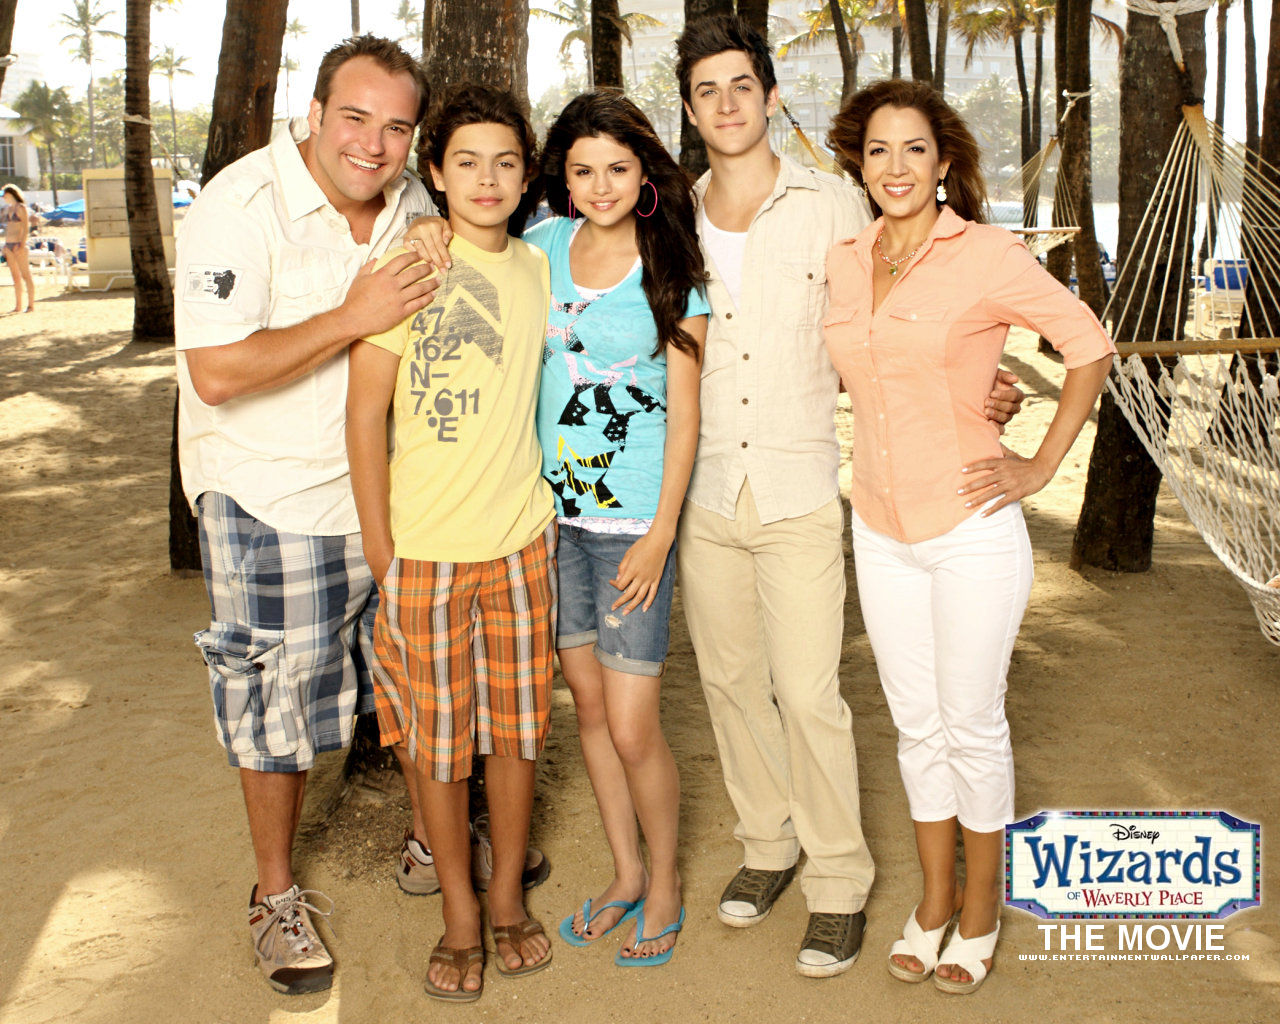 「Wizards of Waverly Place: The Movie」の画像検索結果